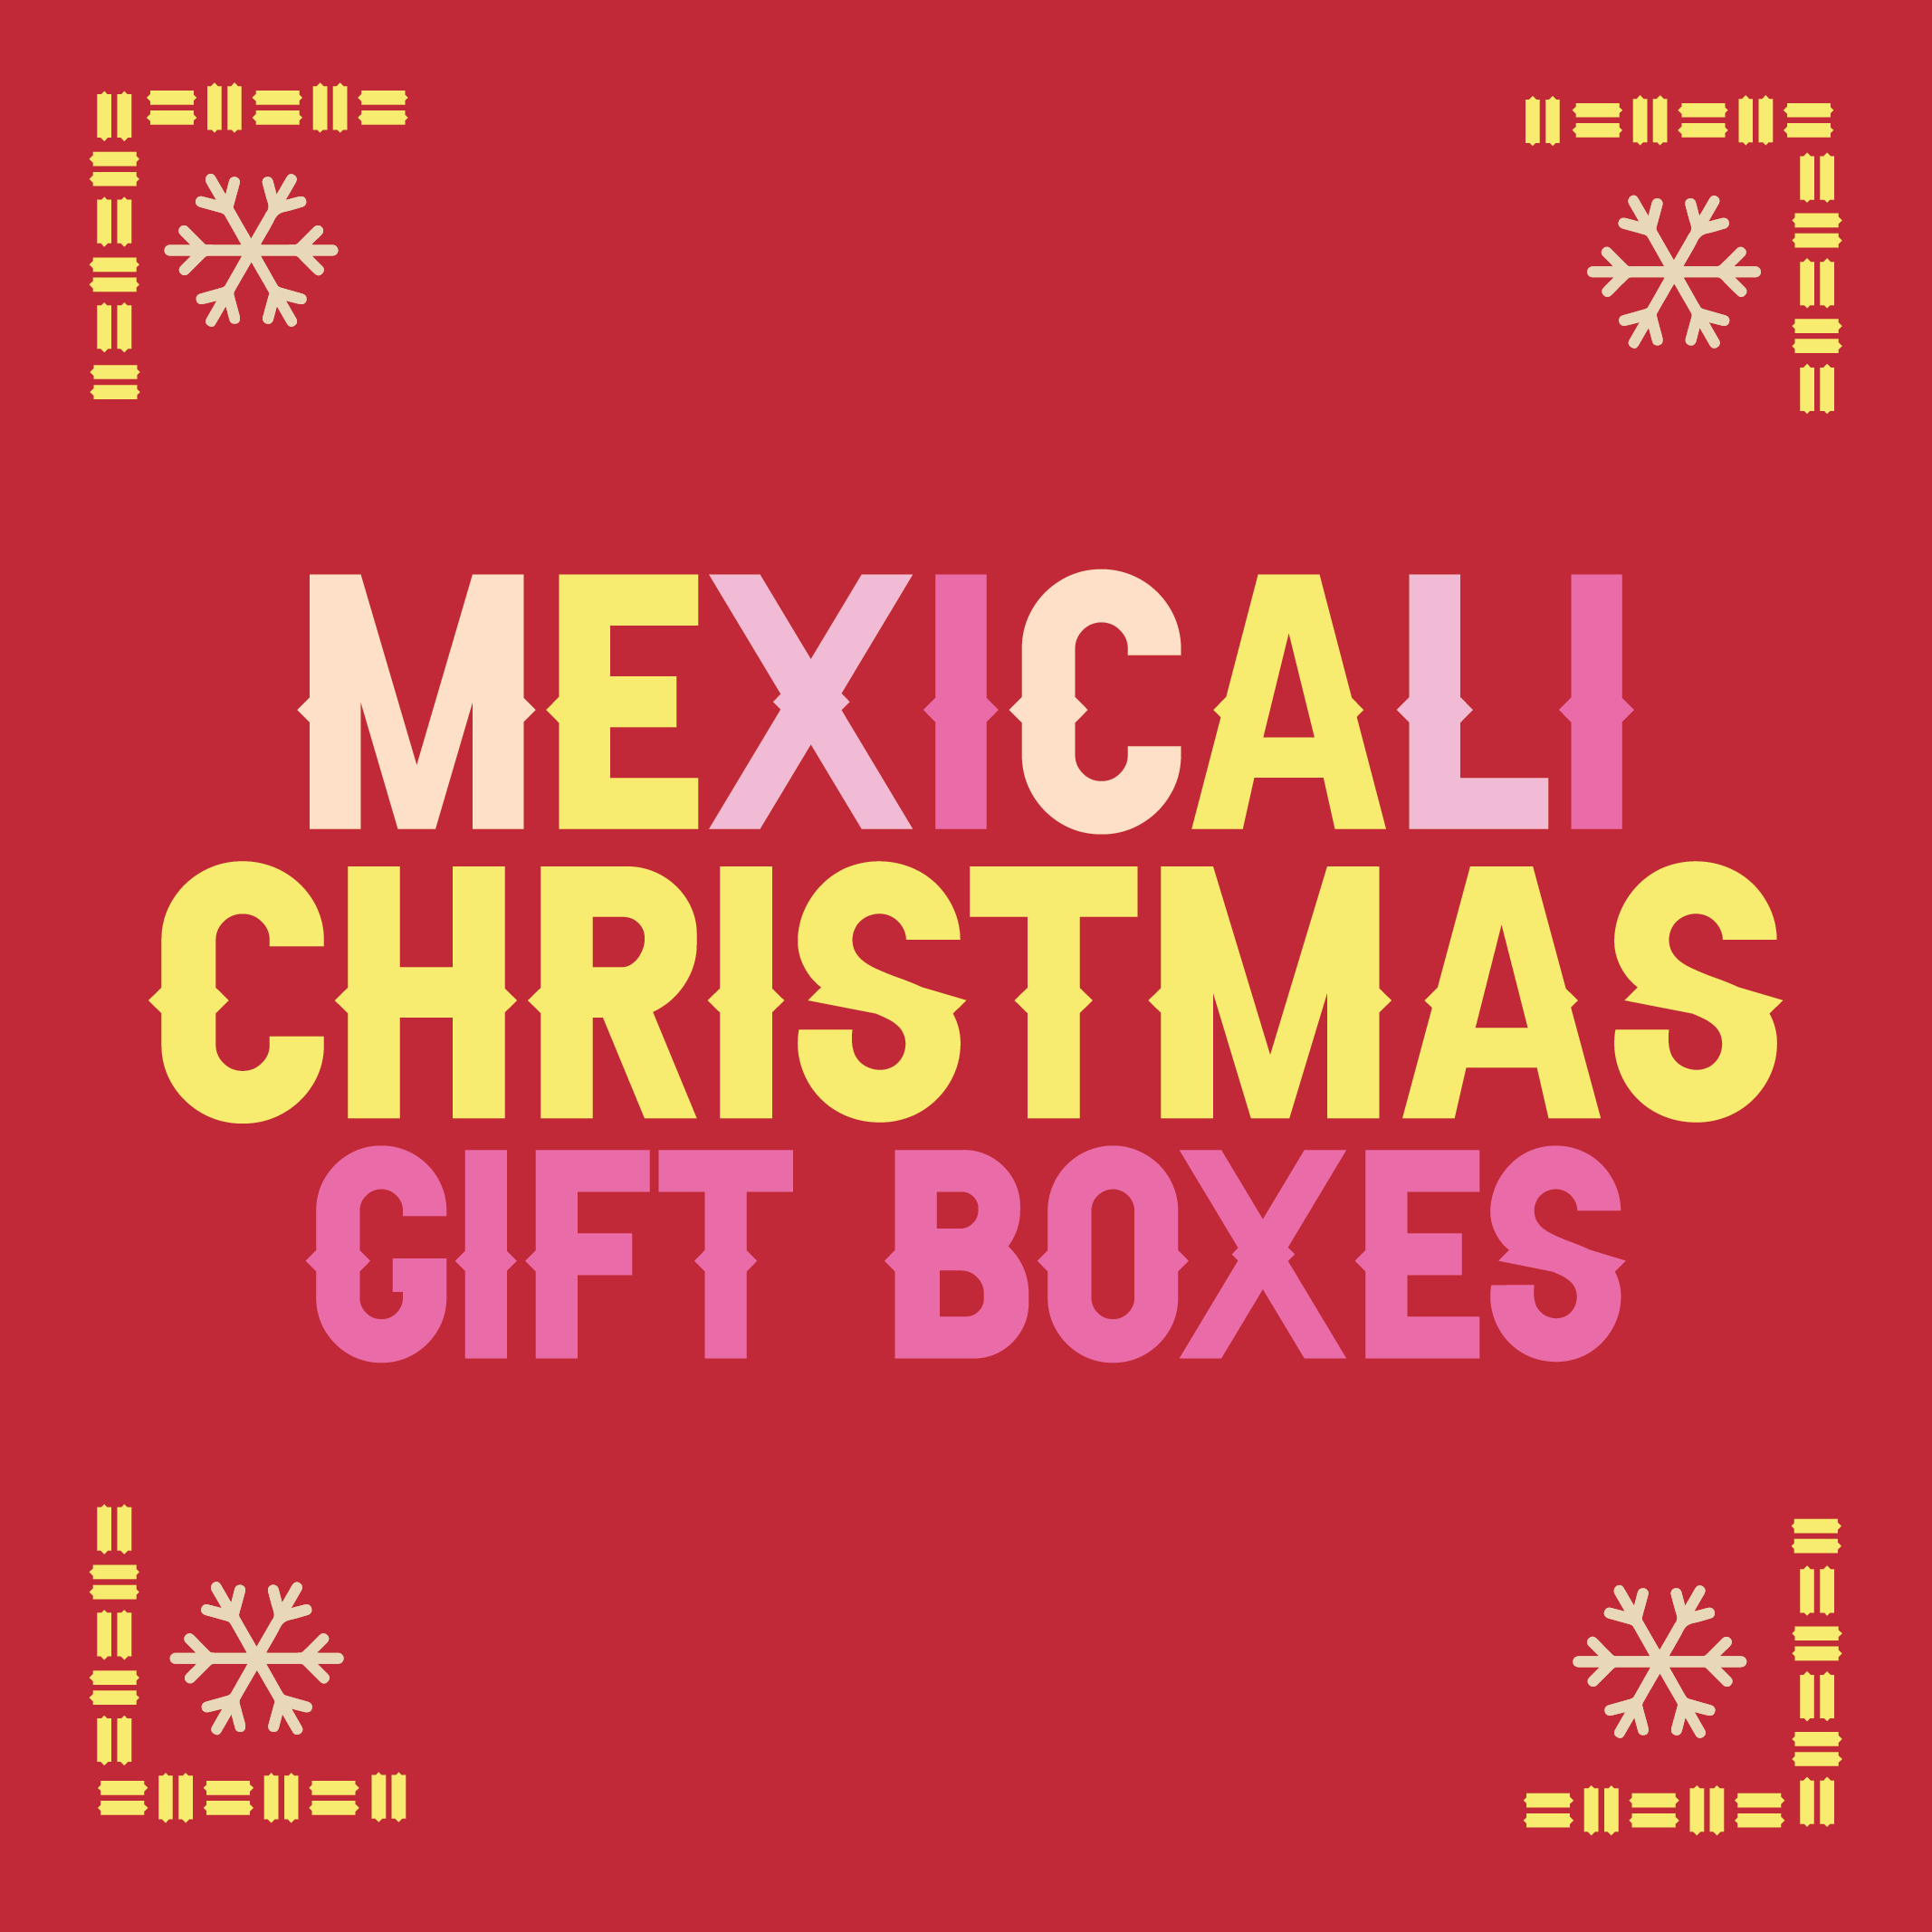 Mexicali Christmas Gift Boxes